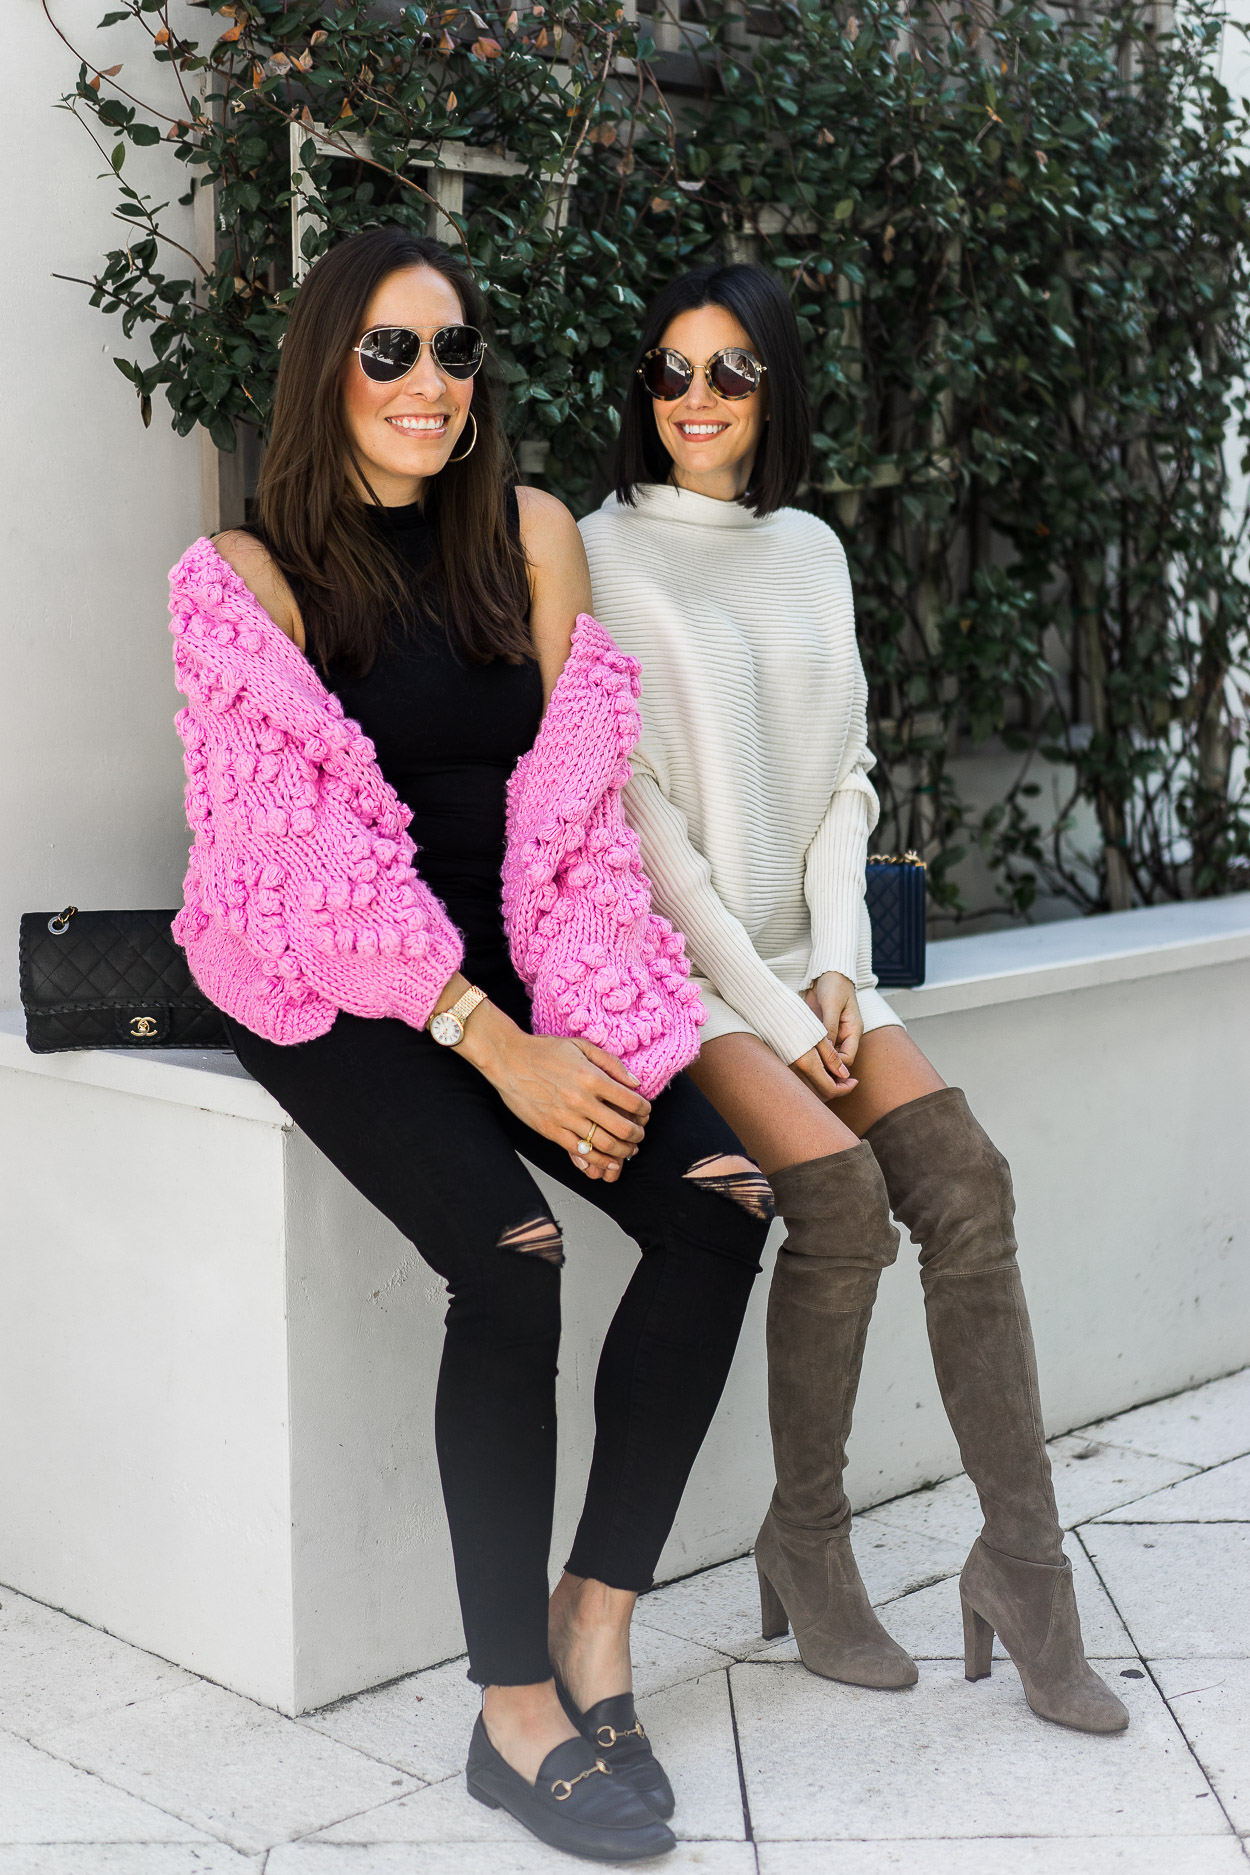 Amanda wears pink Chicwish pom pom cardigan and Caitlin wears white Intermix tunic dress for blogger style at its best